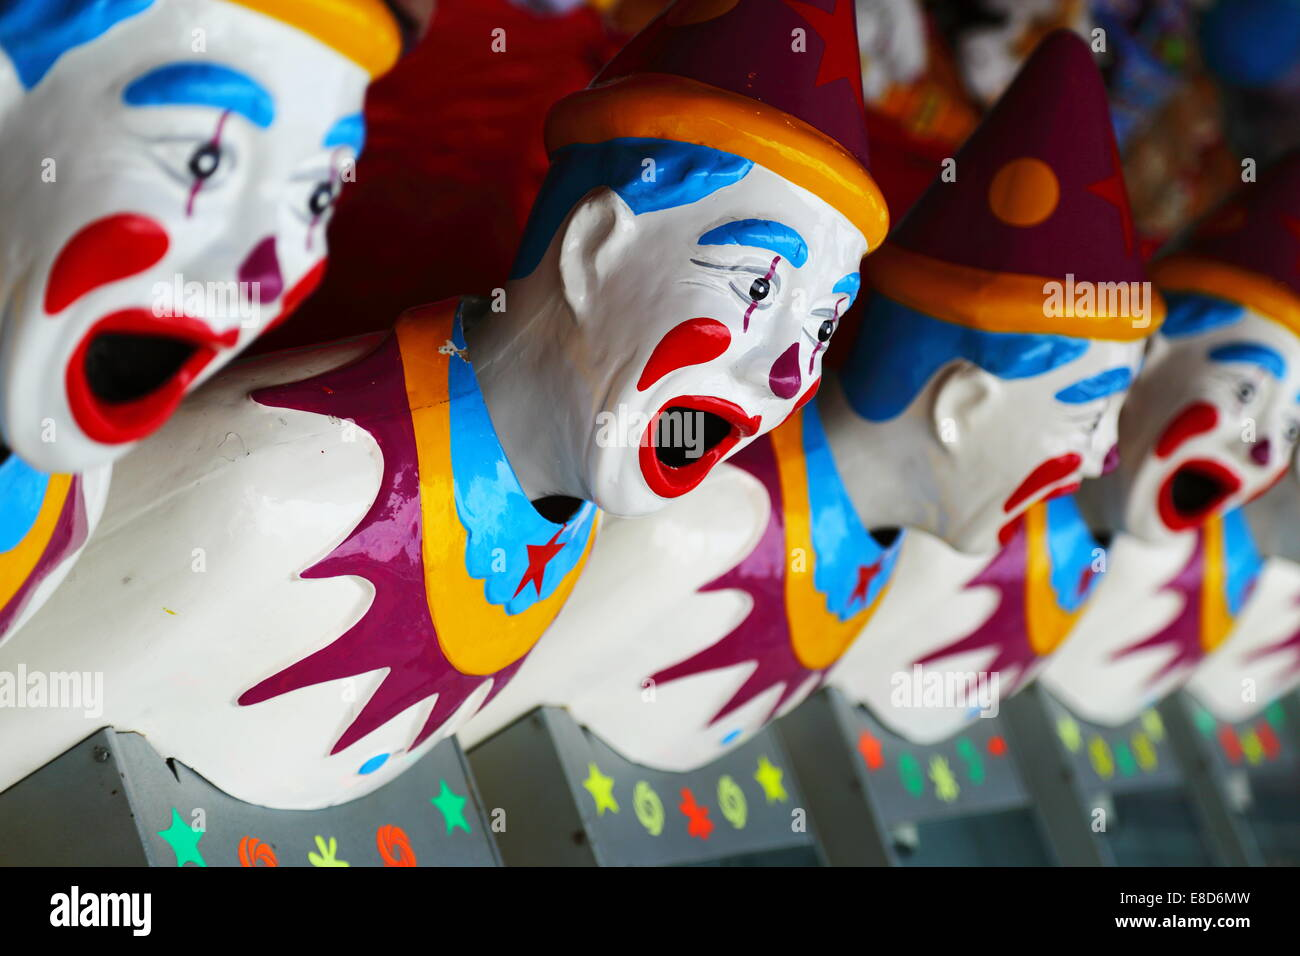 Laughing Clowns jeu de hasard à un sideshow alley stand au Royal Show de Perth, Australie occidentale. Photo Stock